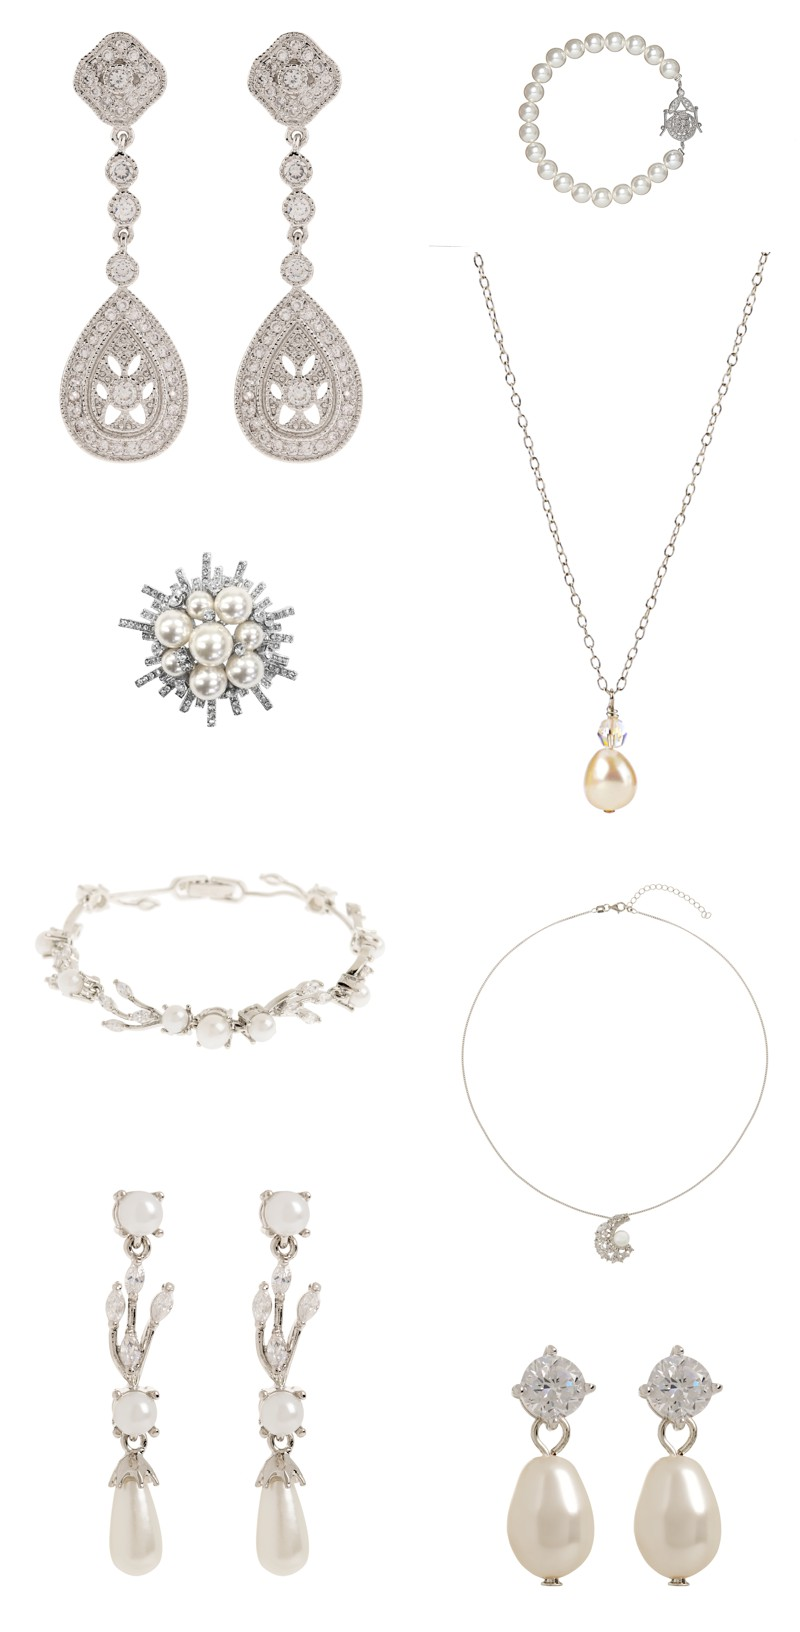 Win A £200 Shopping Spree To Spend On Bridesmaids Jewellery From Liberty In Love 0001 Win A £200 Shopping Spree To Spend On Bridesmaids Jewellery!